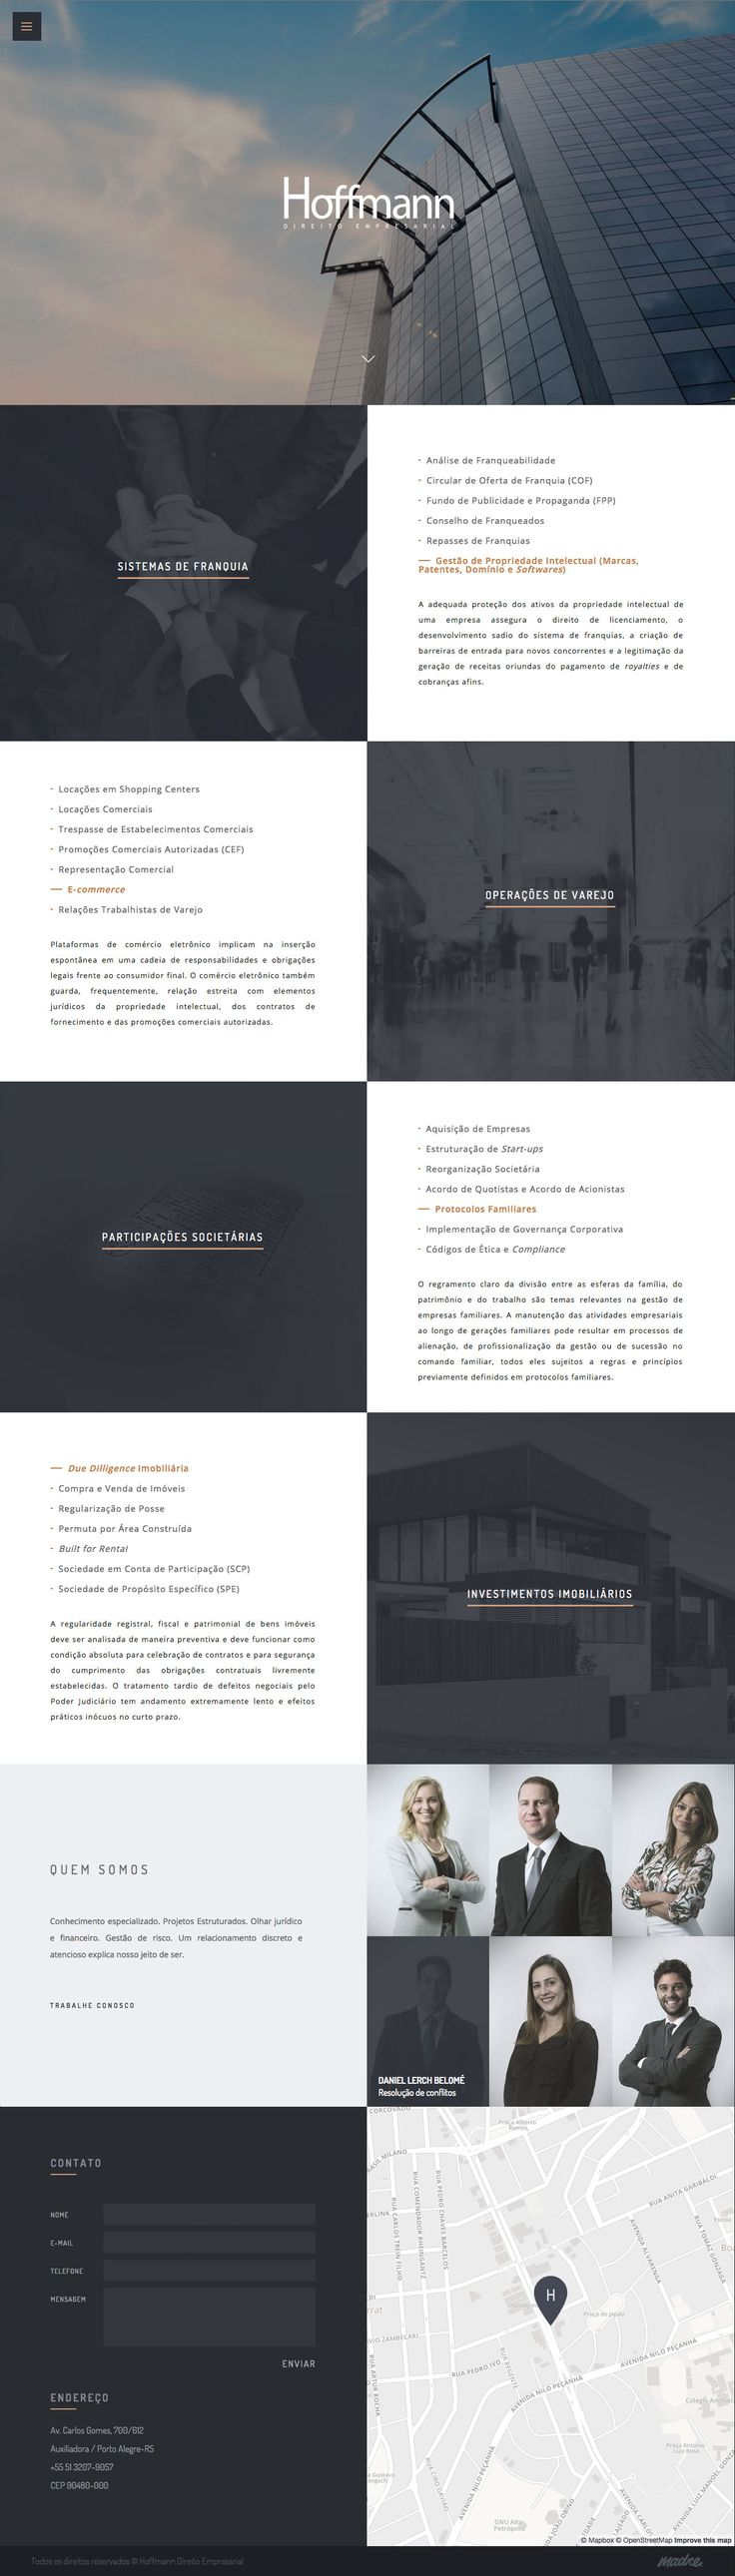 """Stylish One Pager for Brazilian law firm, 'Hoffmann' featuring a good responsive design that fills a big screen well. Love the Hero image choice and overall color scheme - I hadn't seen a """"corporate"""" One Pager in ages and this one really is slick."""